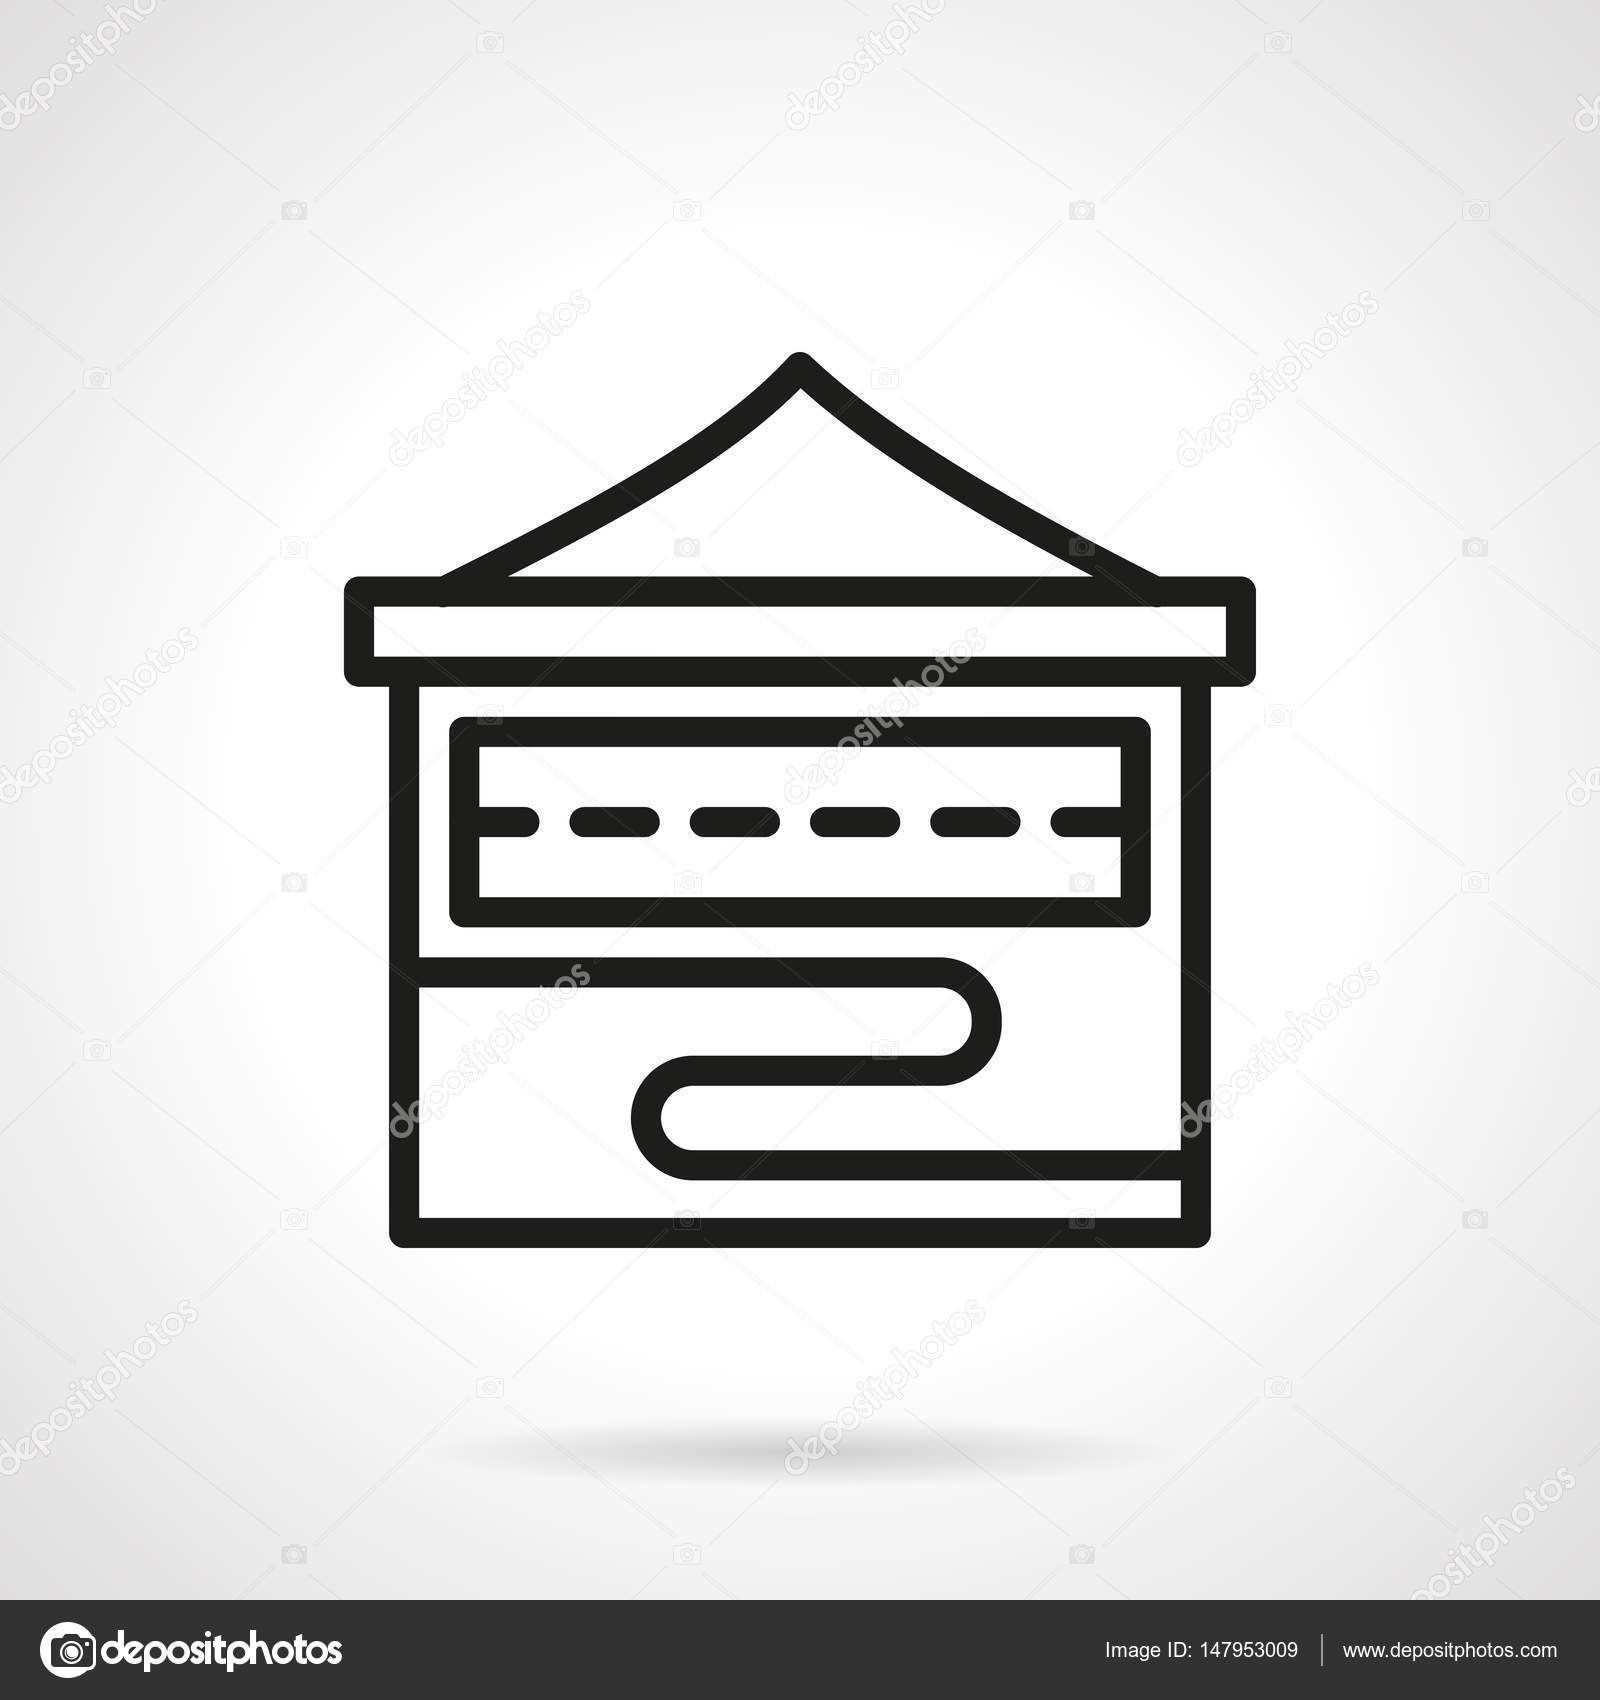 Folding Stall Simple Line Vector Icon Stock Vector